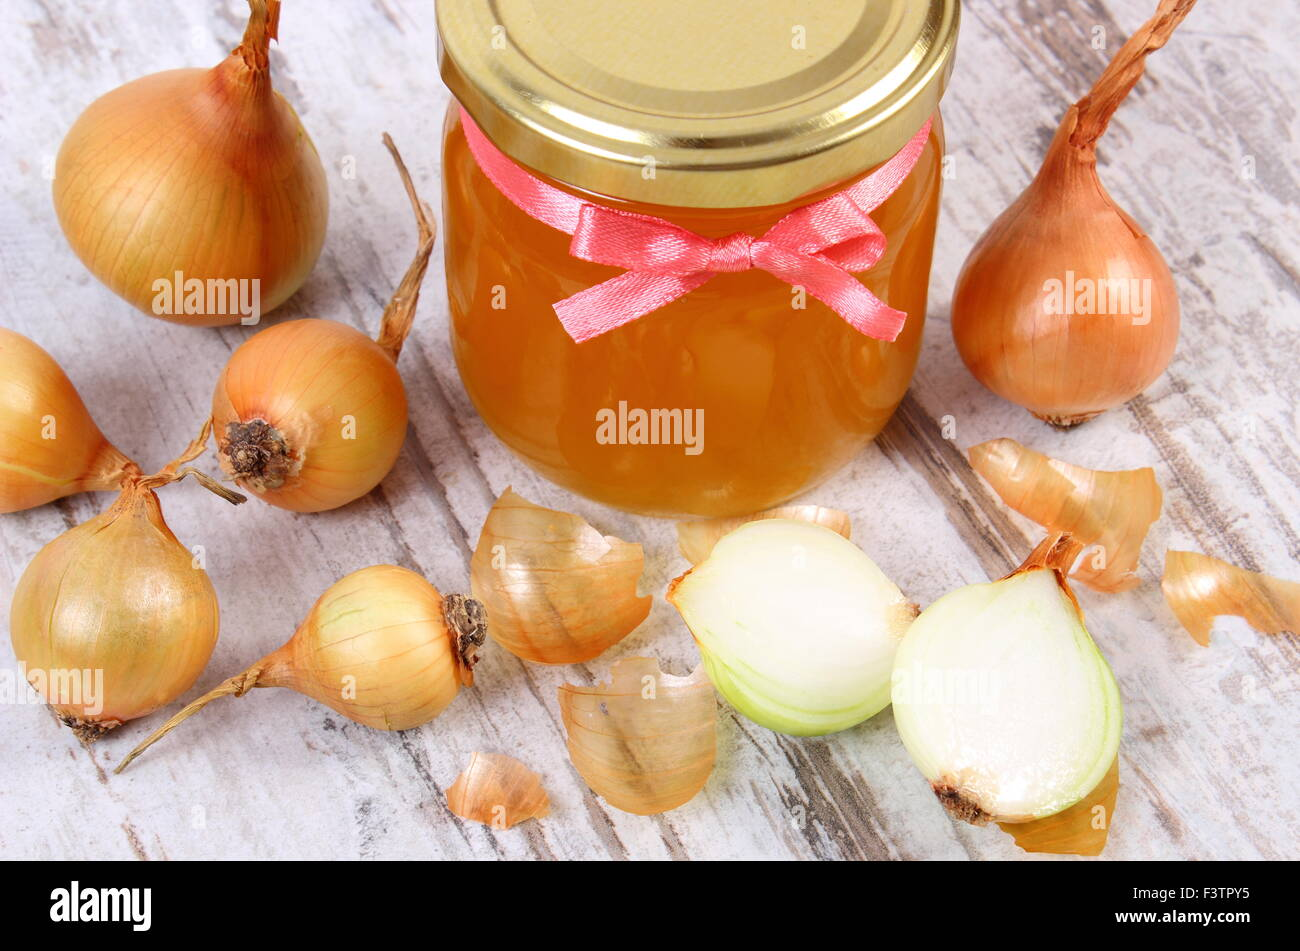 Fresh organic honey in glass jar and onions on old rustic wooden background, healthy nutrition, strengthening immunity - Stock Image